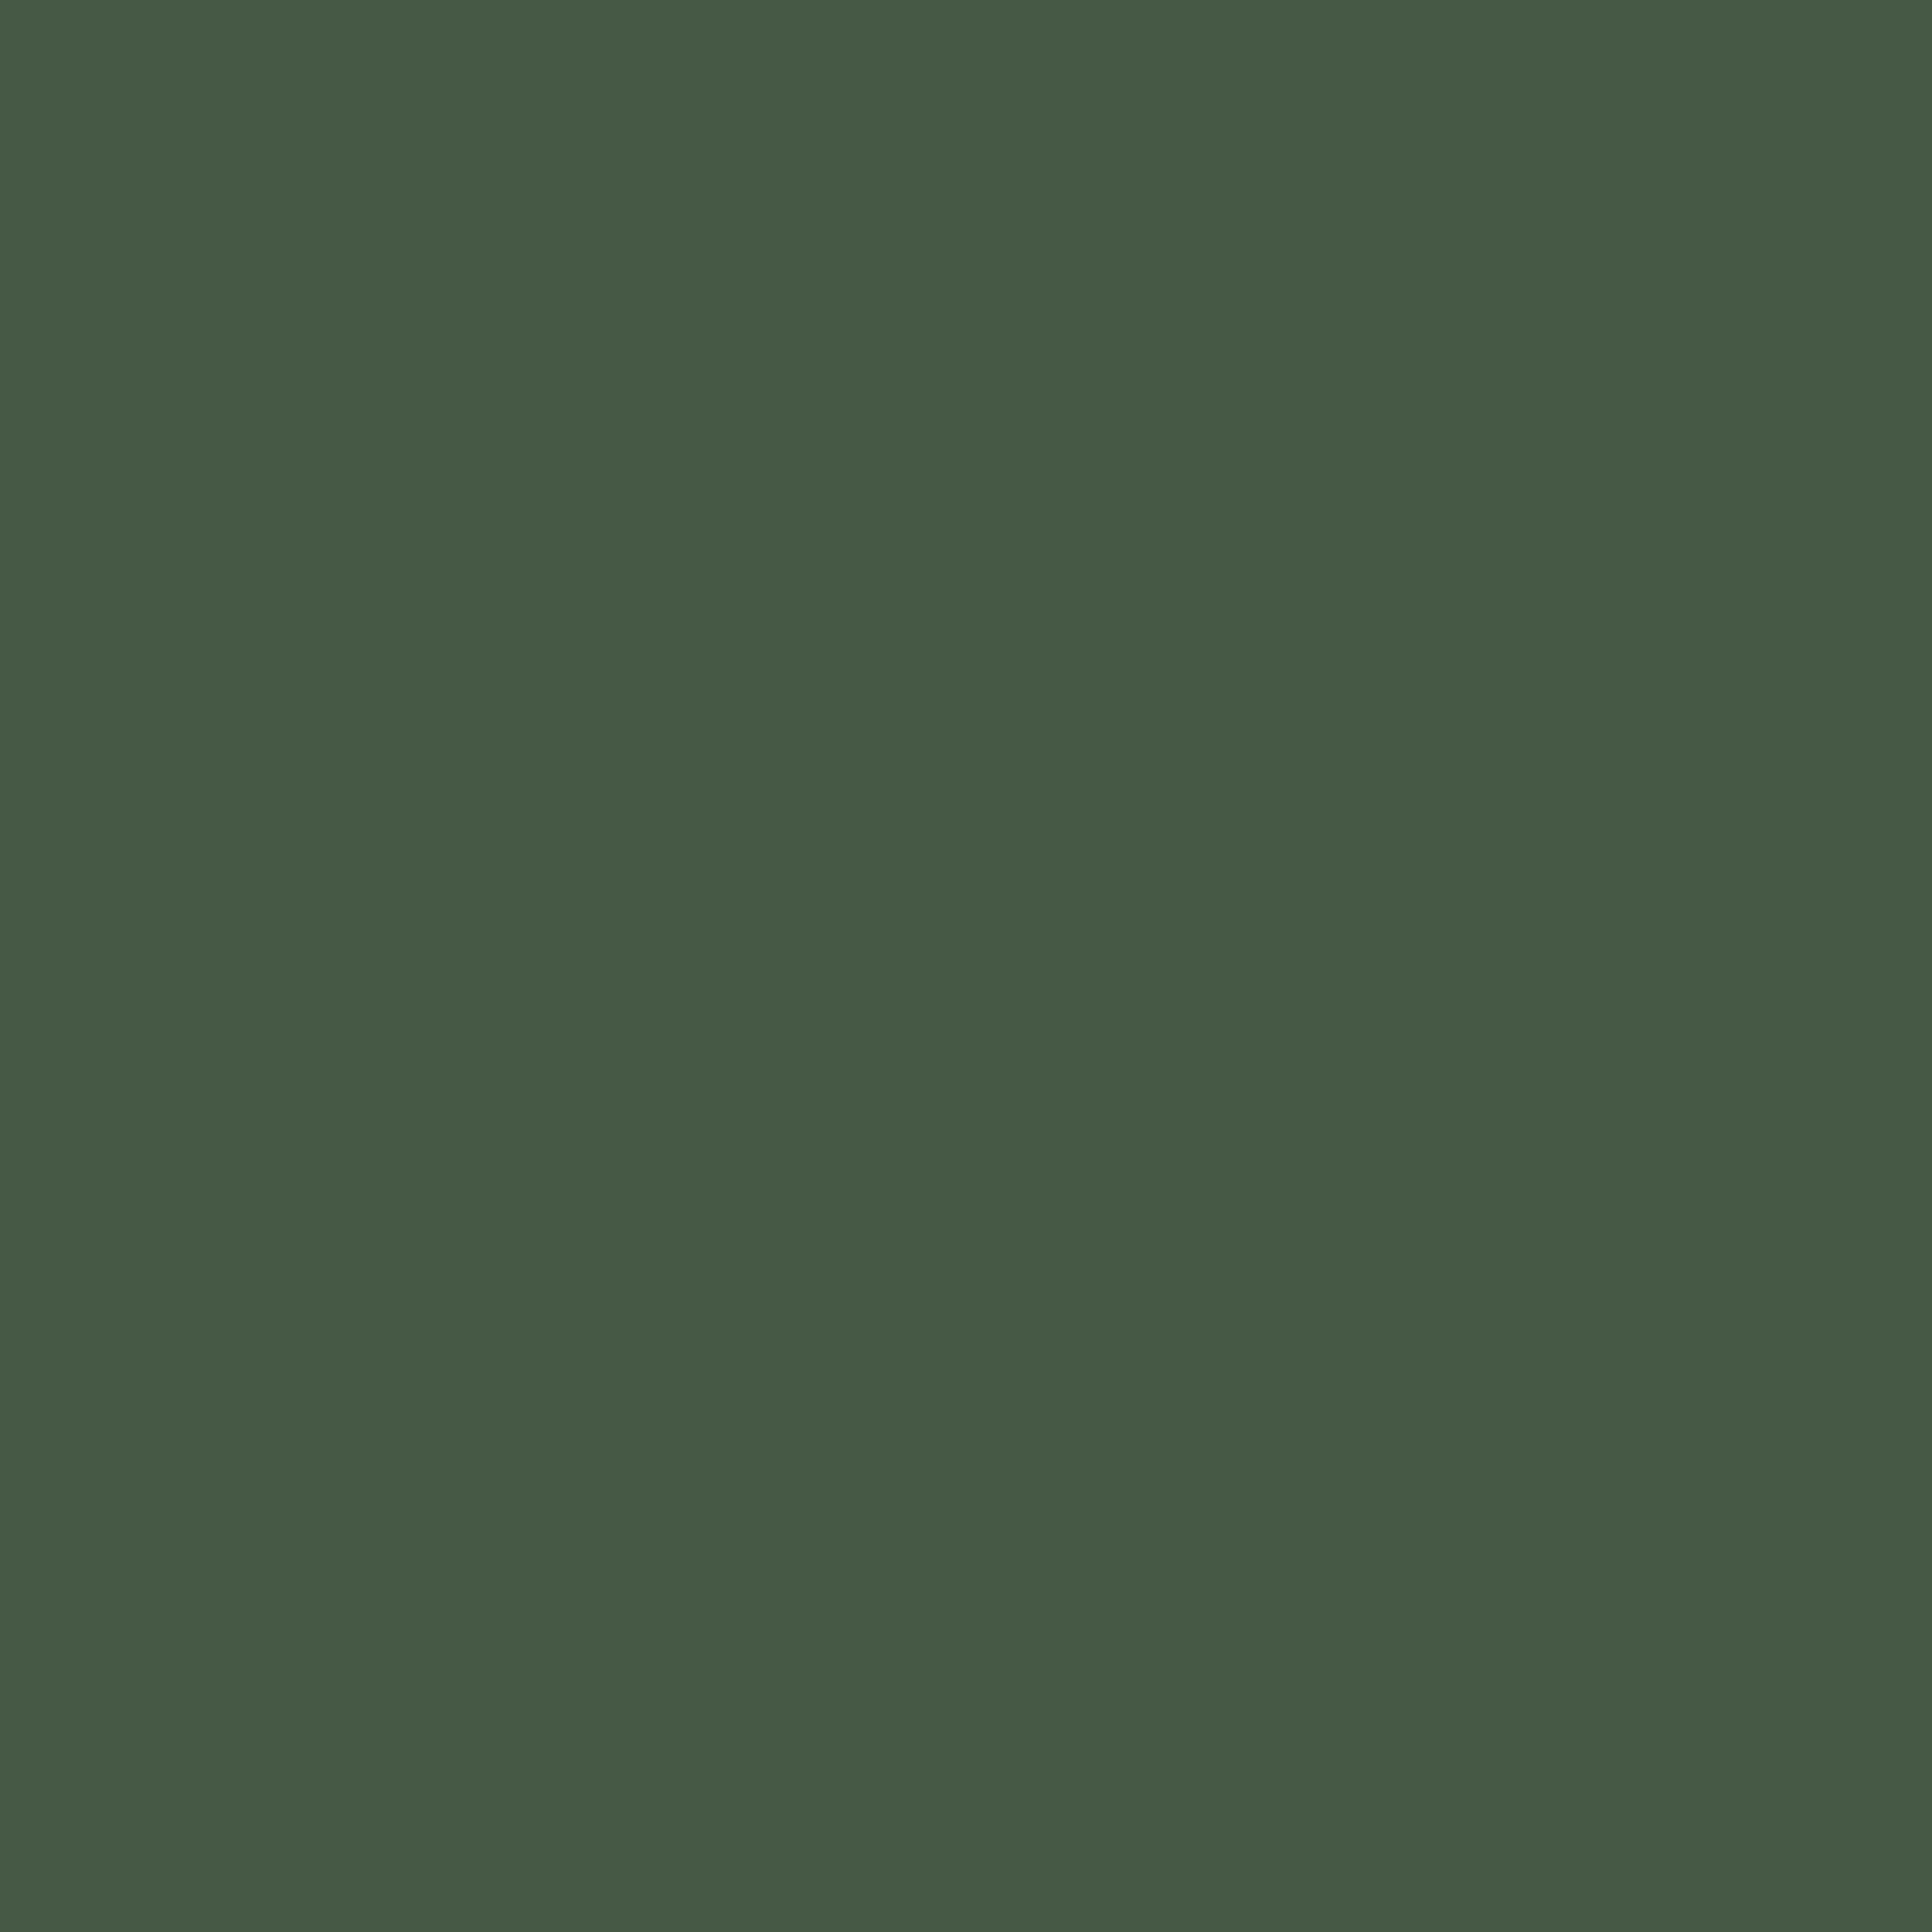 Green Gray Color.2732x2732 Gray Asparagus Solid Color ...